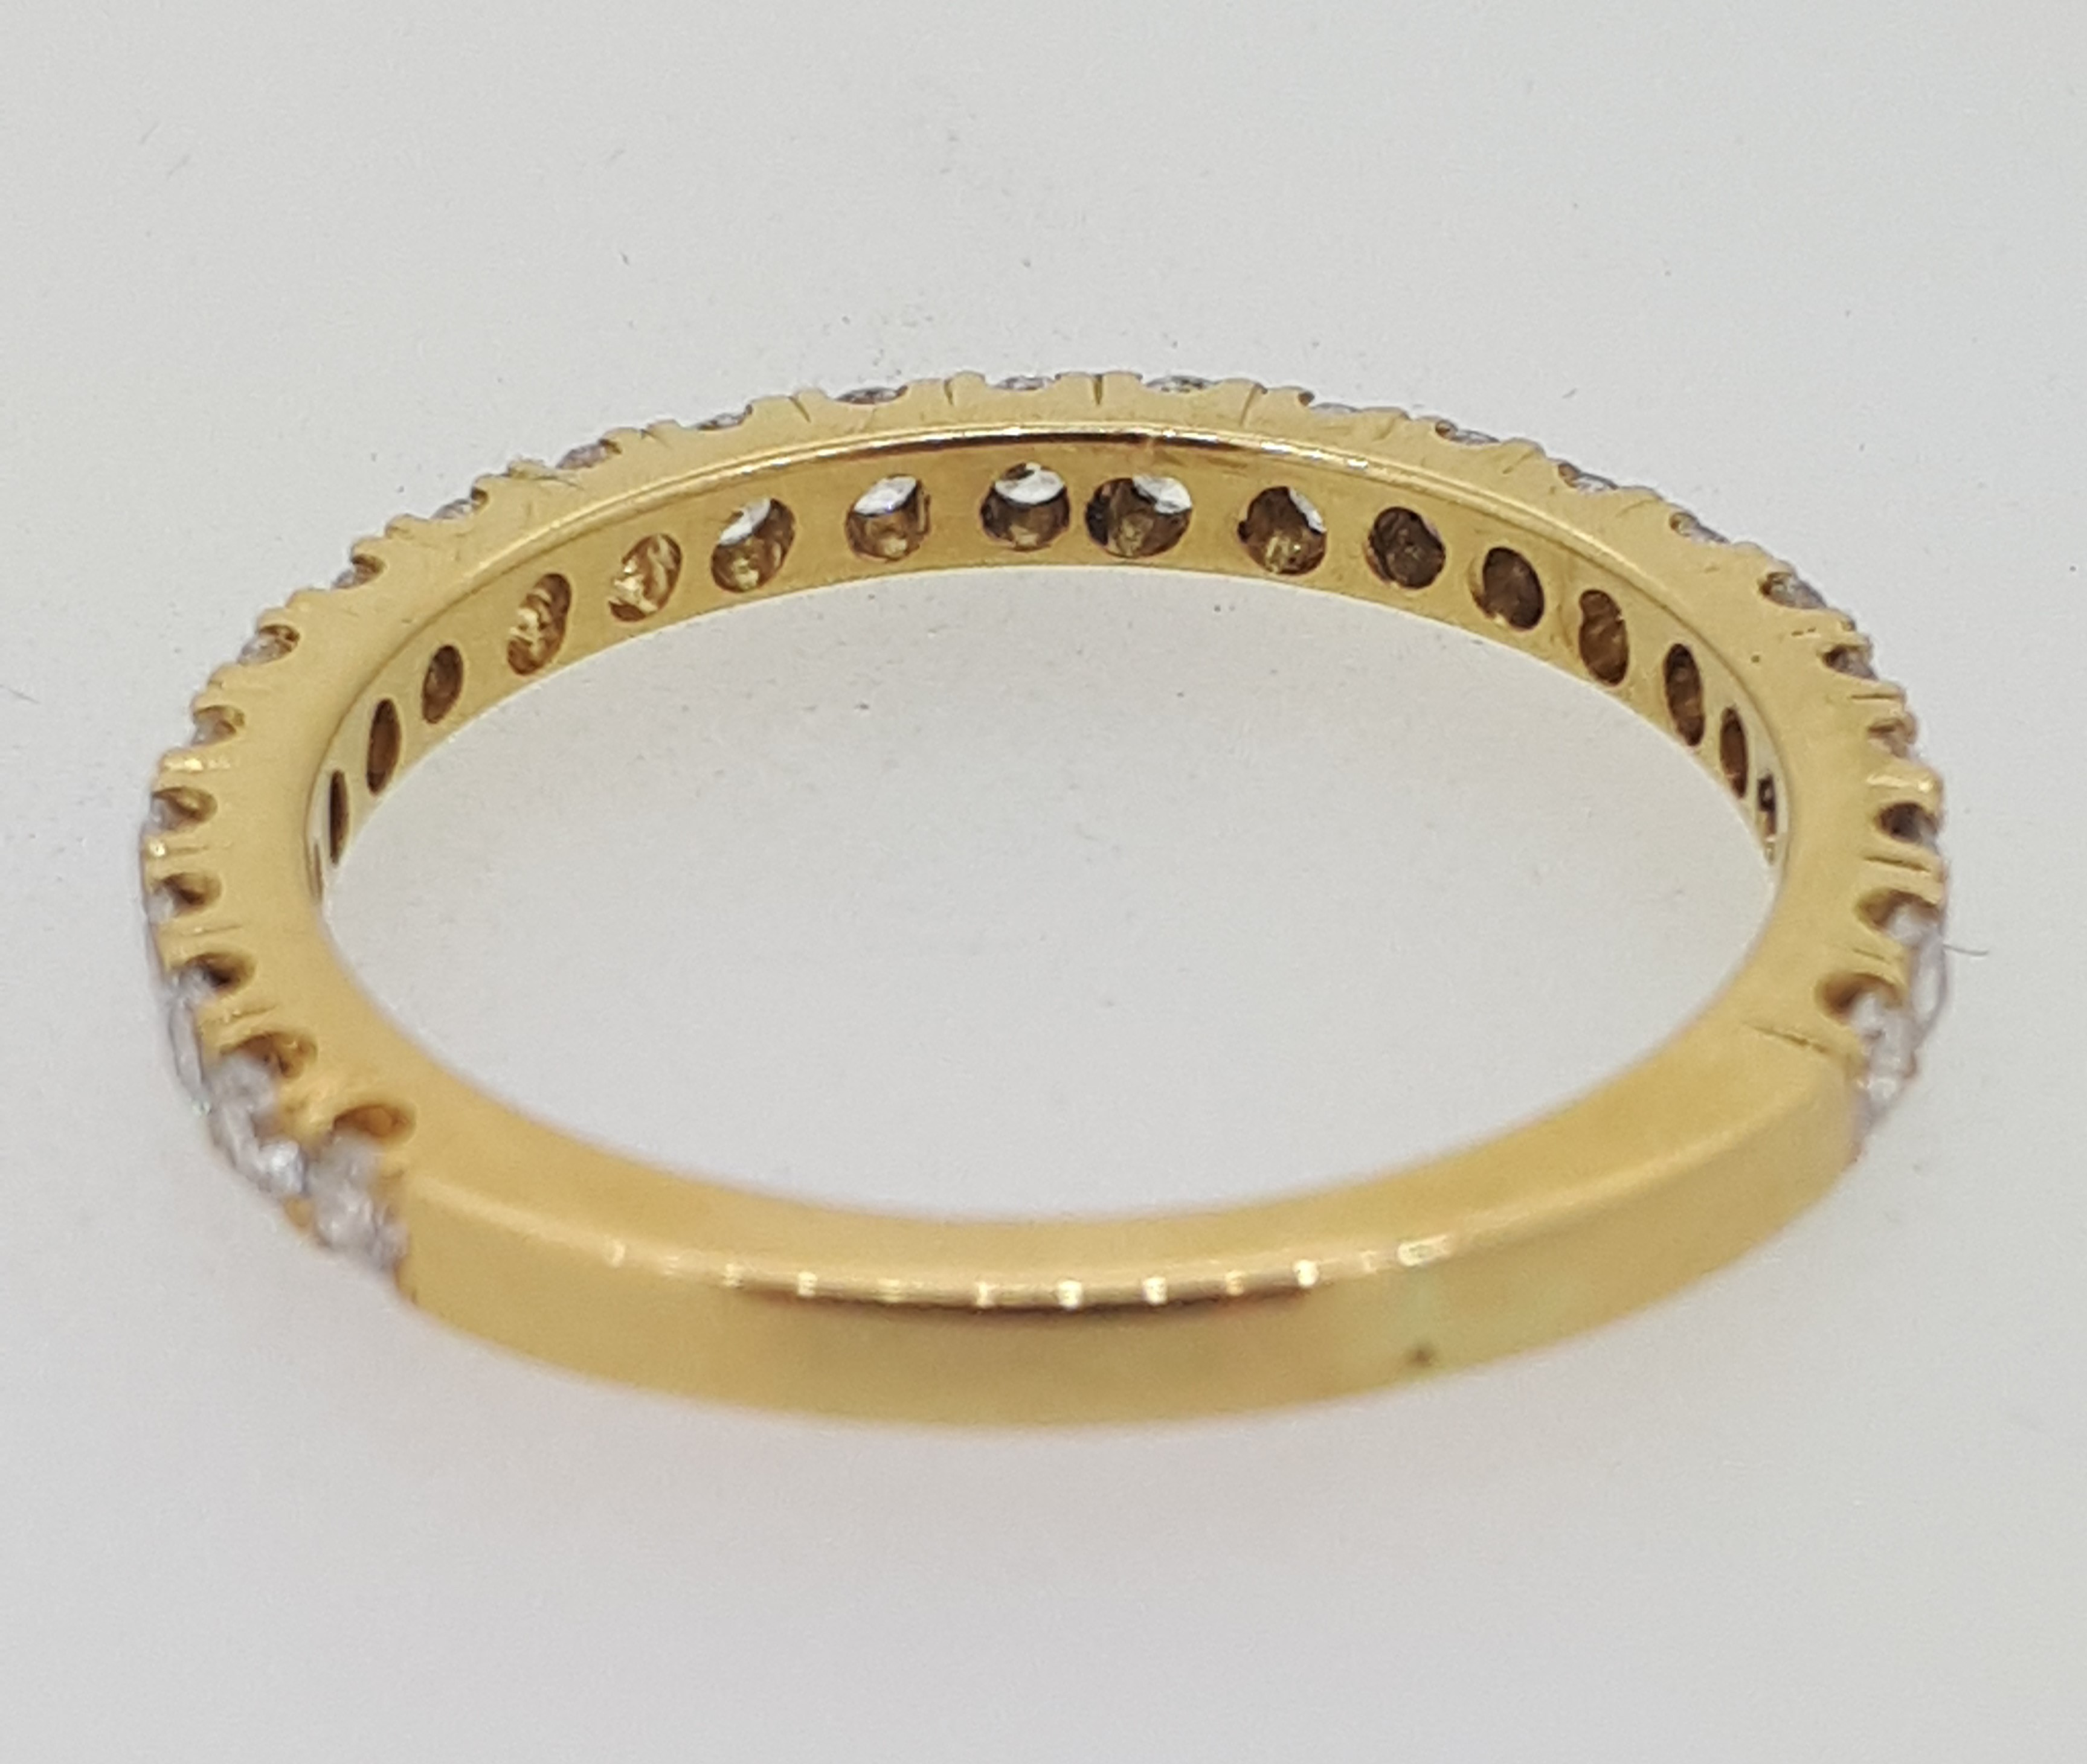 Handmade 18ct (750) yellow Gold 0.25ct 3/4 Claw Set Eternity Ring - Image 5 of 6